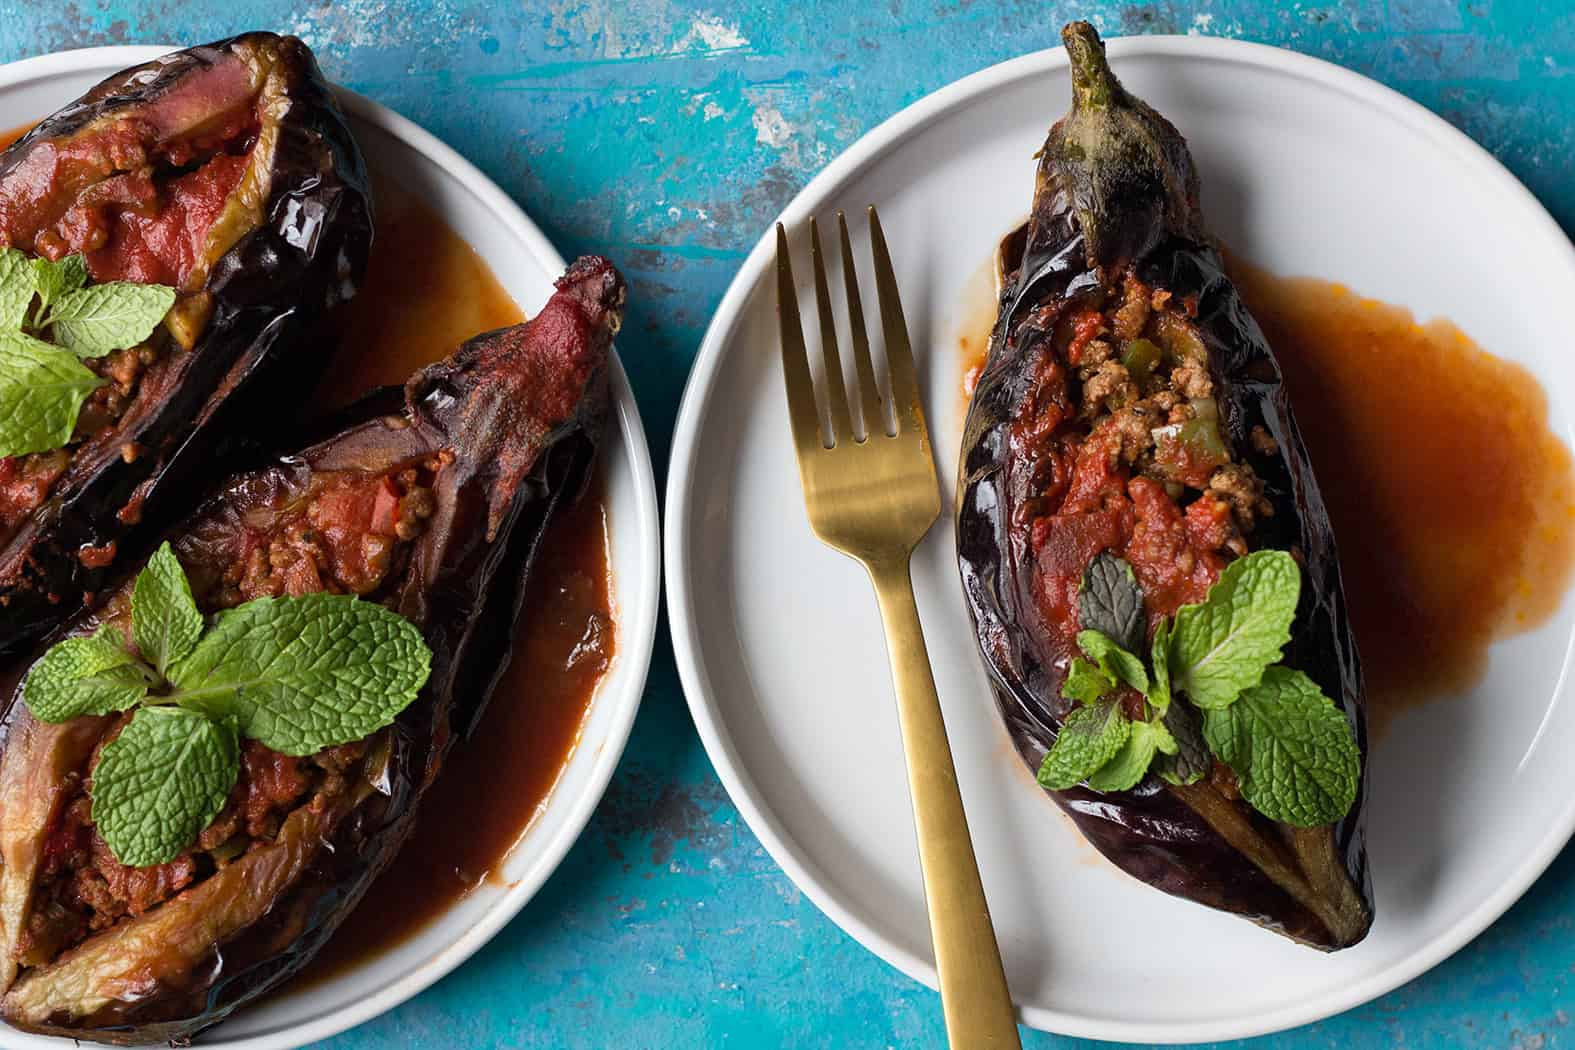 Turkish stuffed eggplant on white plates topped with fresh mint.